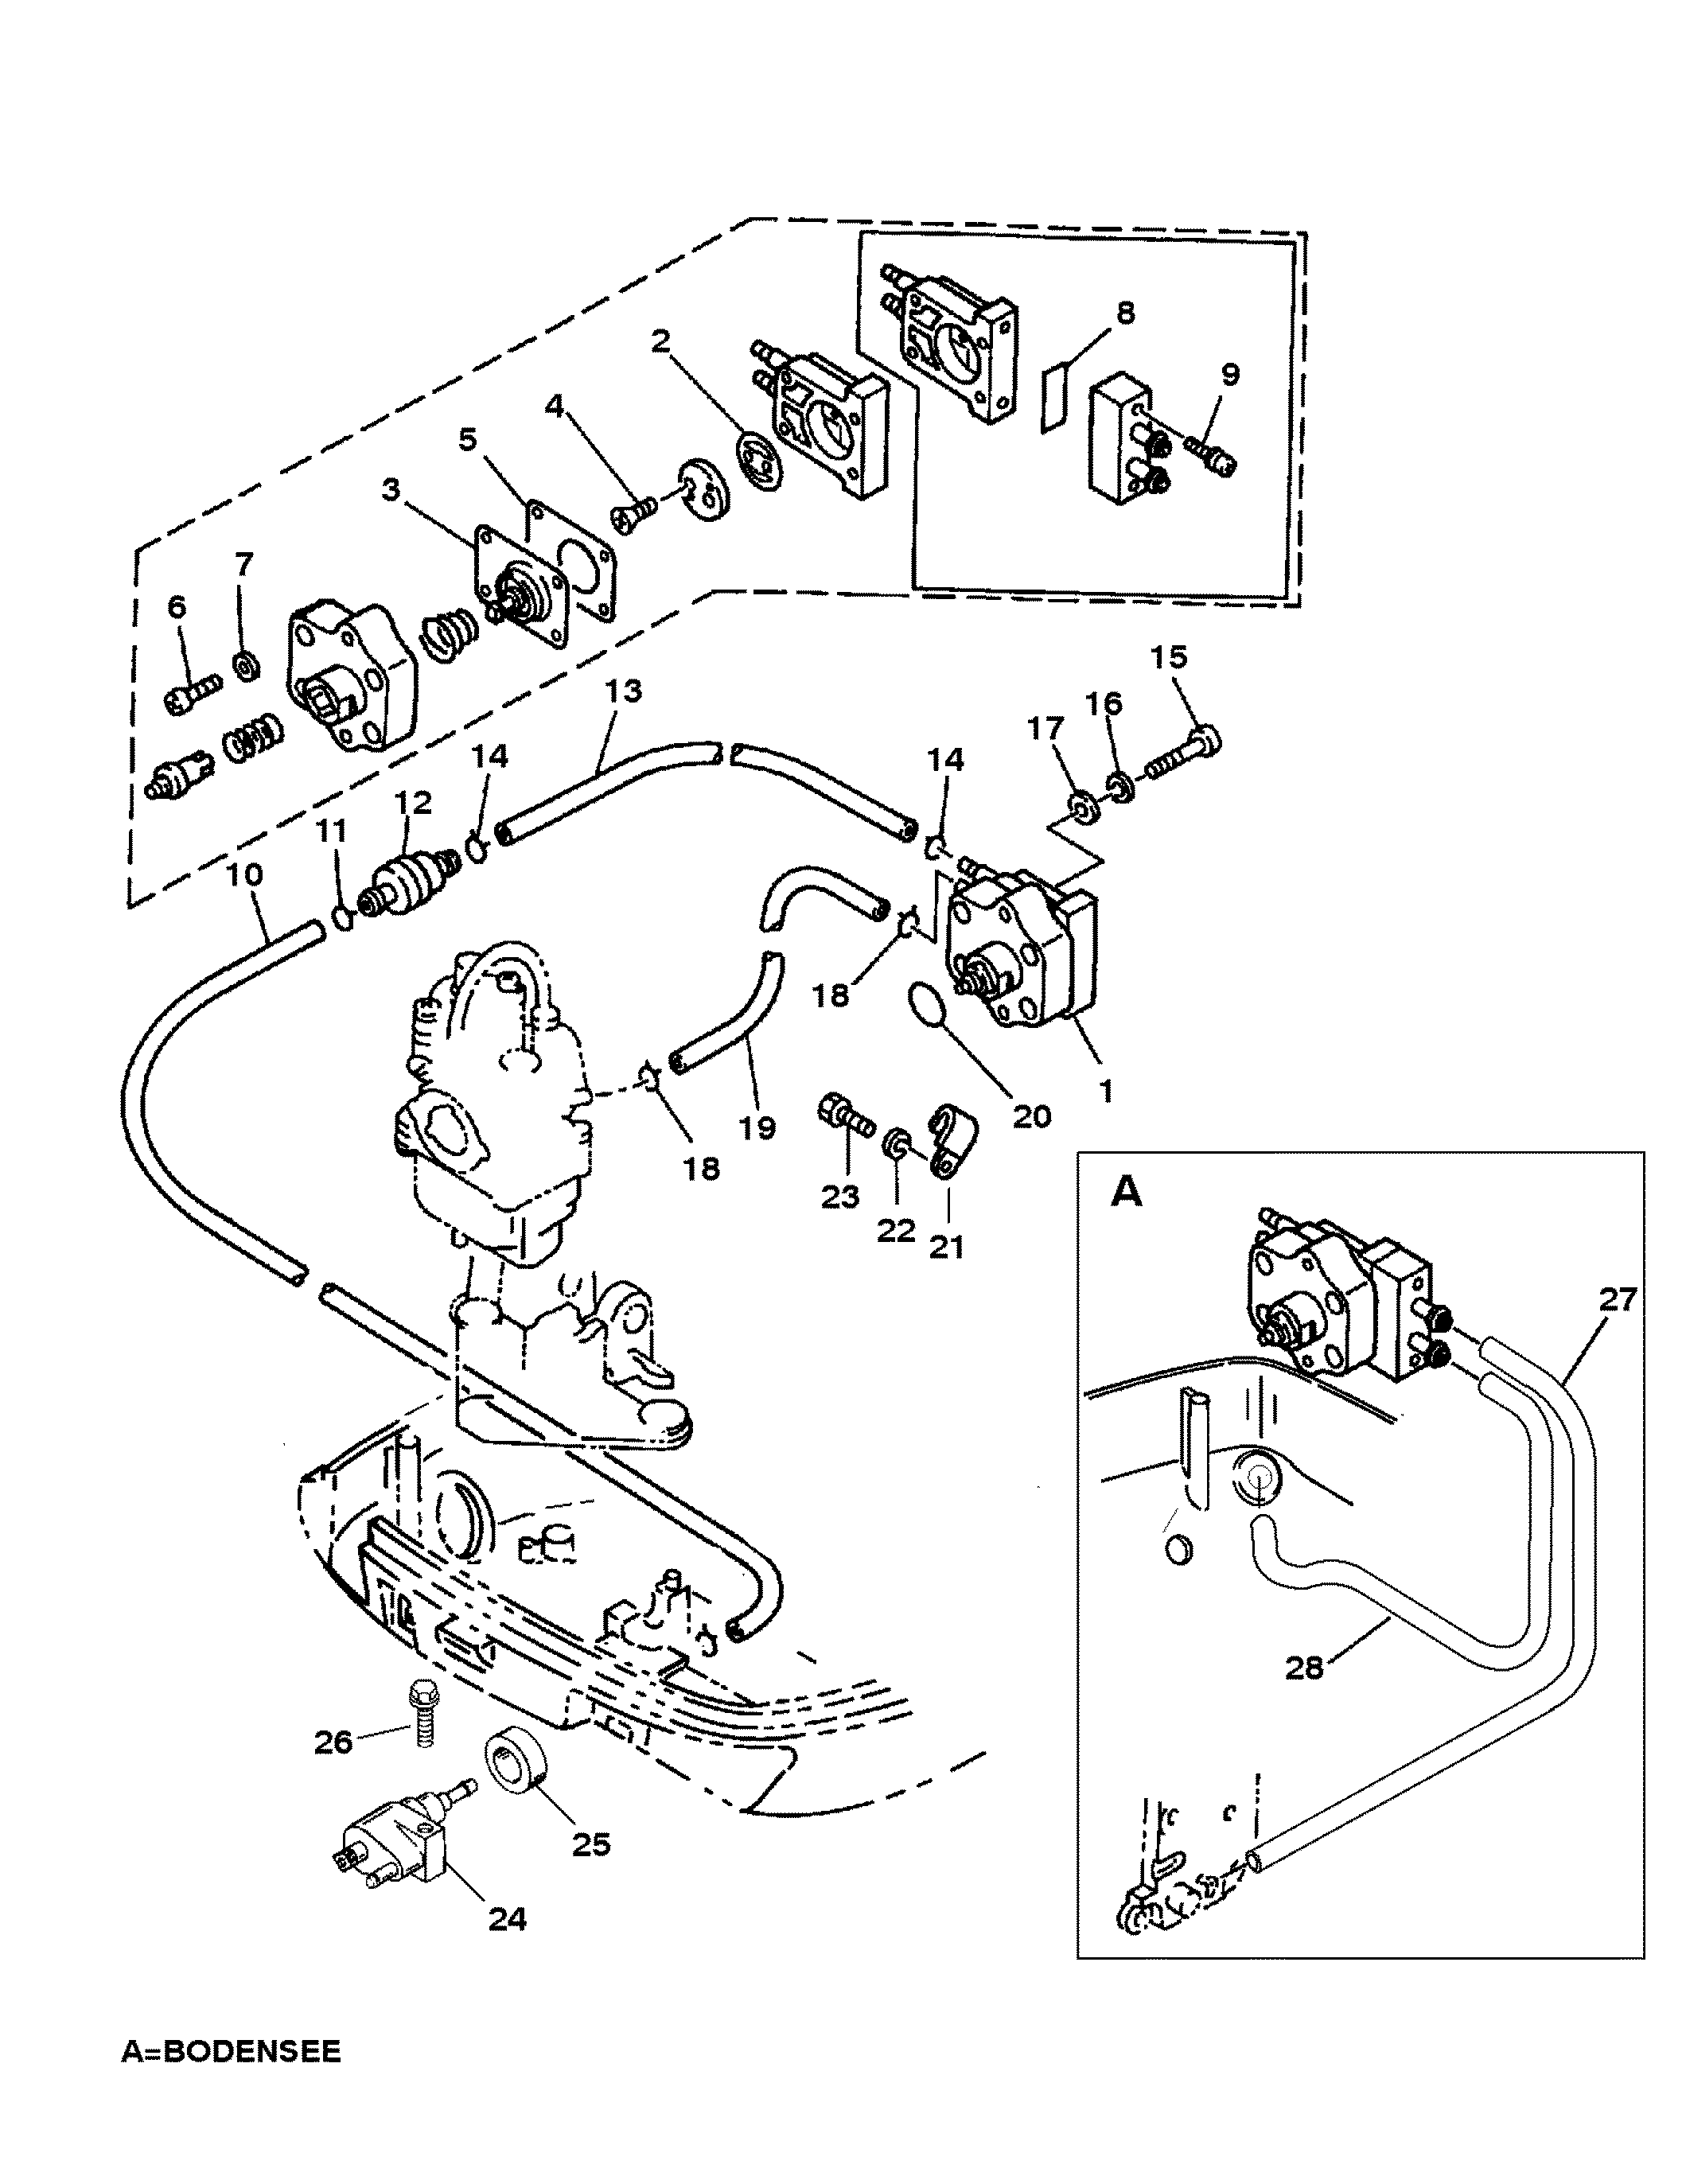 7 fuel pump for mariner mercury 9 9 8 bondensee 4 stroke mercury 9.9 4 stroke wiring diagram at panicattacktreatment.co